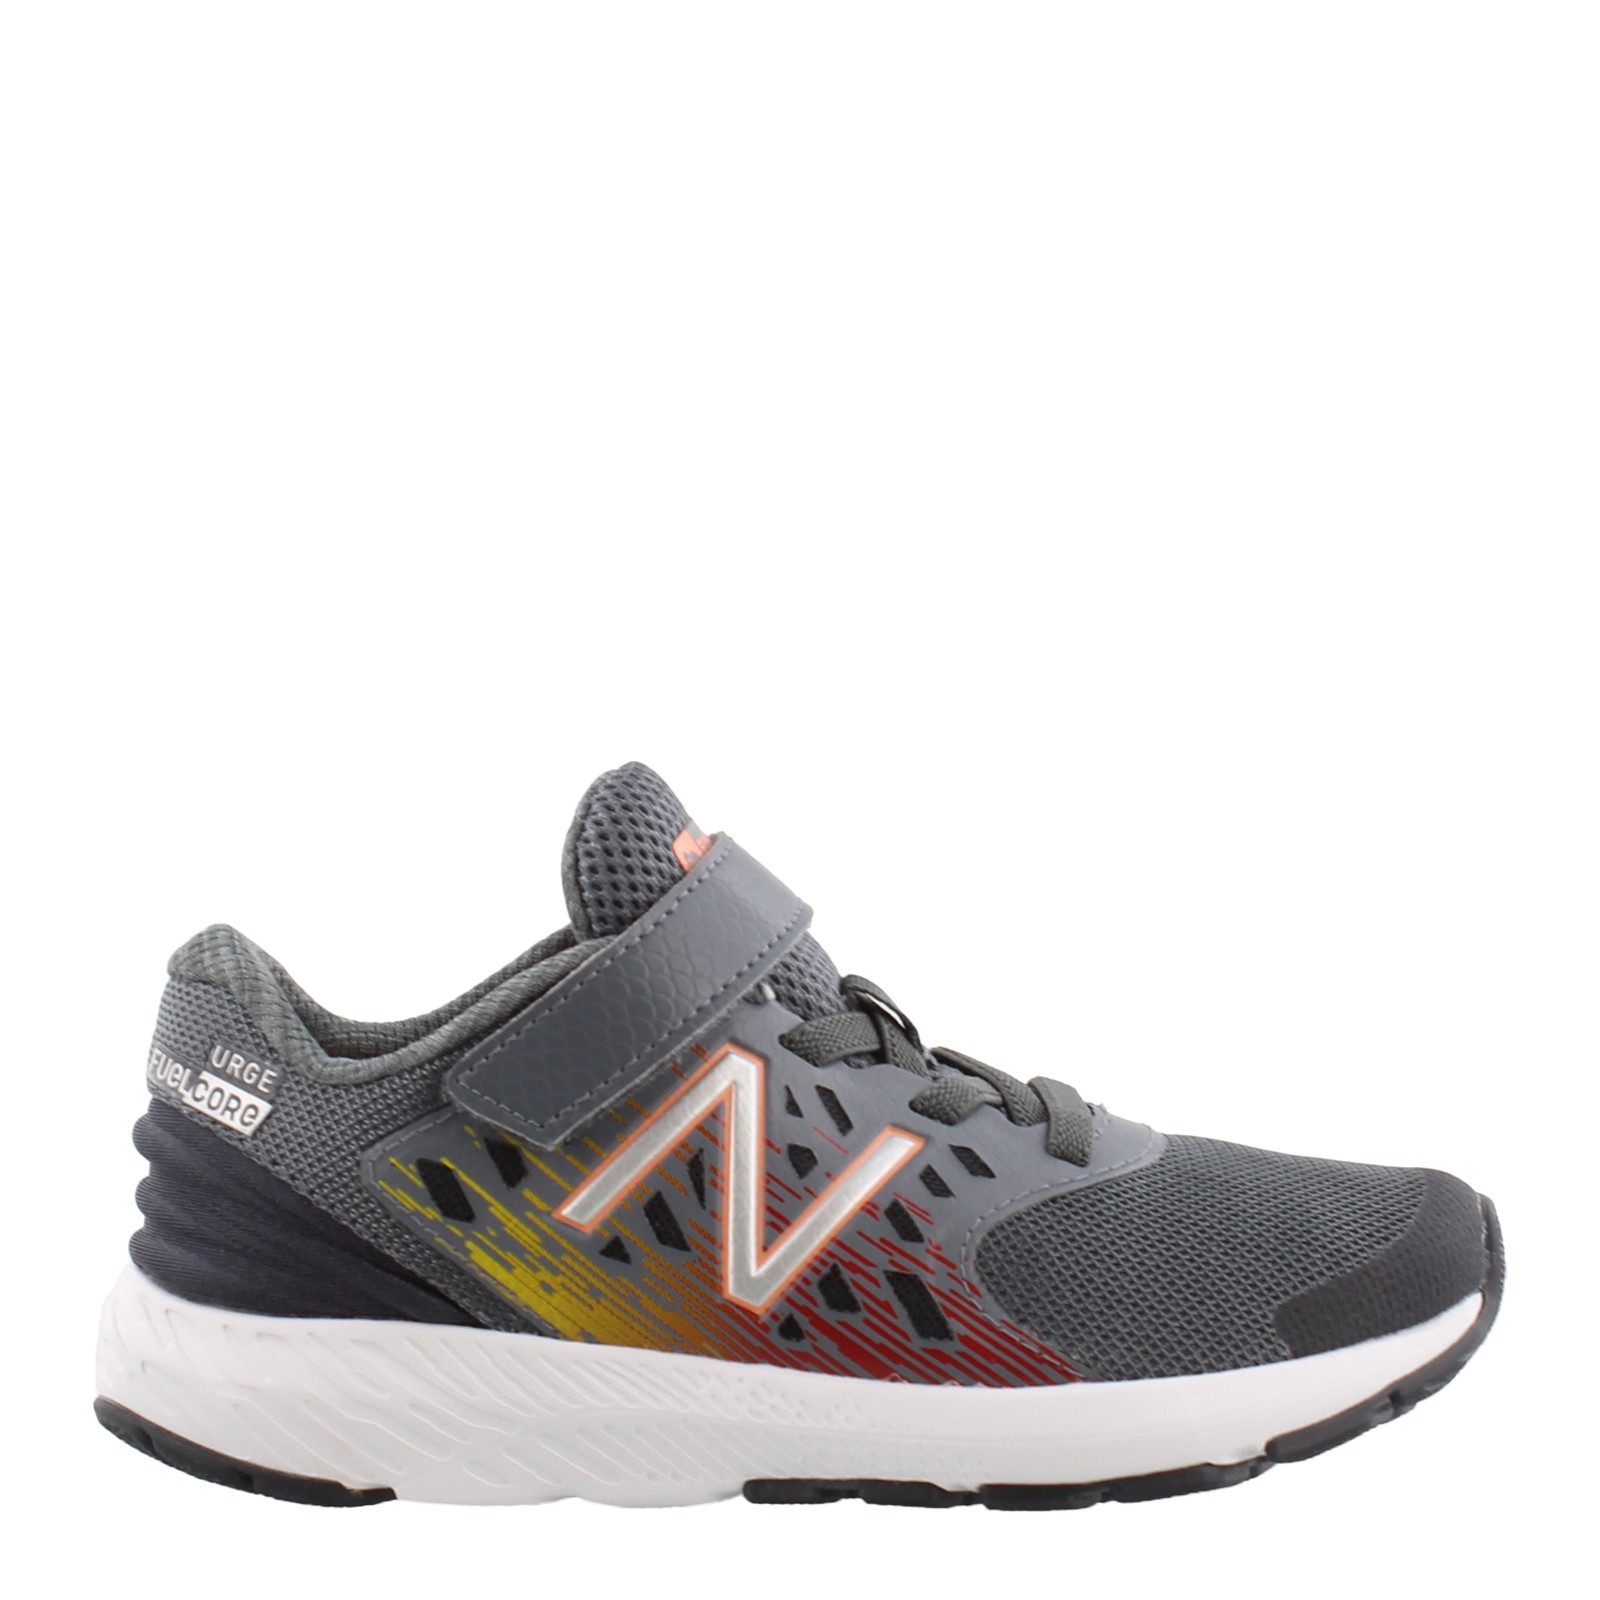 Boy's New Balance, Urge v2 Sneaker - Infant & Toddler